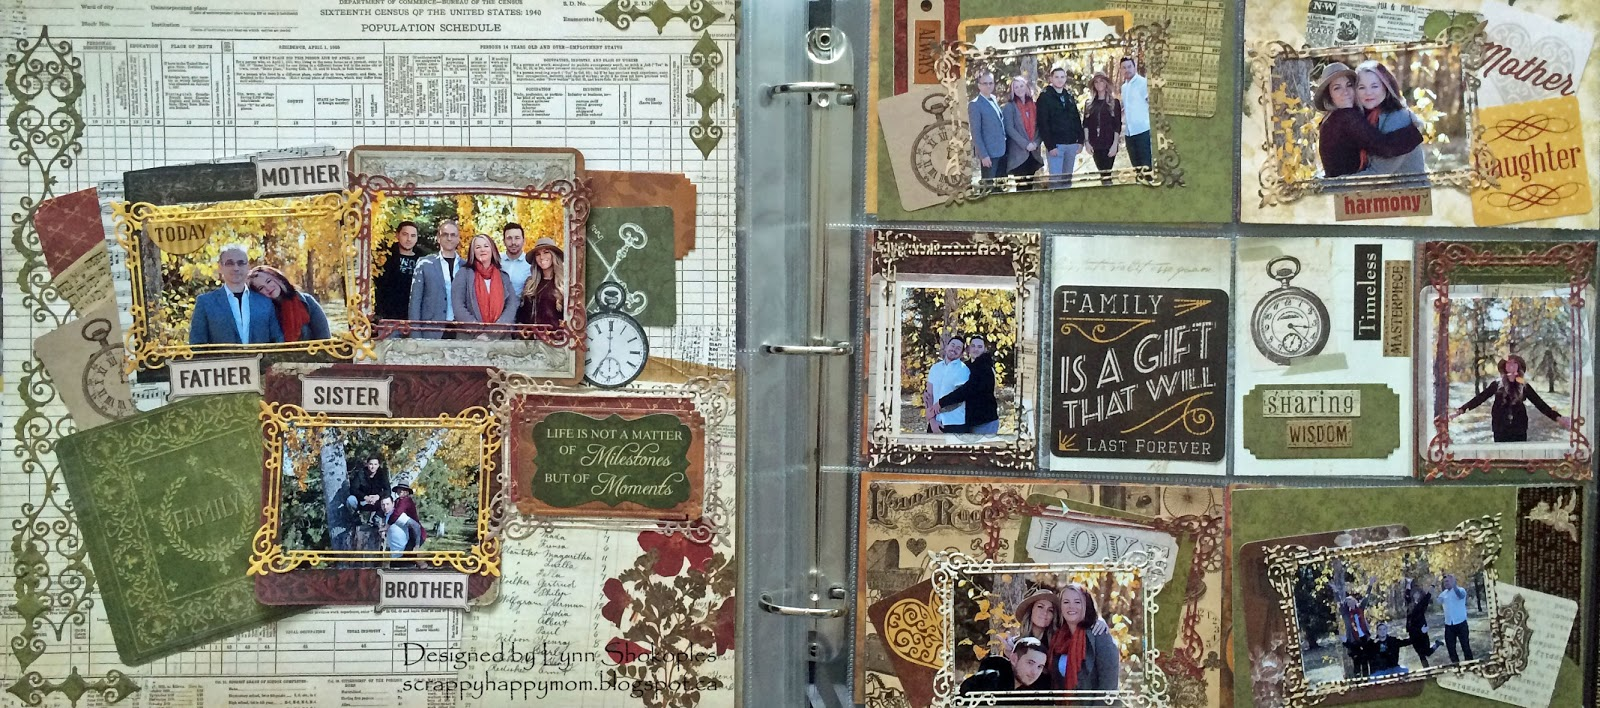 Family Misc. Me layout by Lynn Shokoples for BoBunny featuring the Heritage Collection and Craft Dies